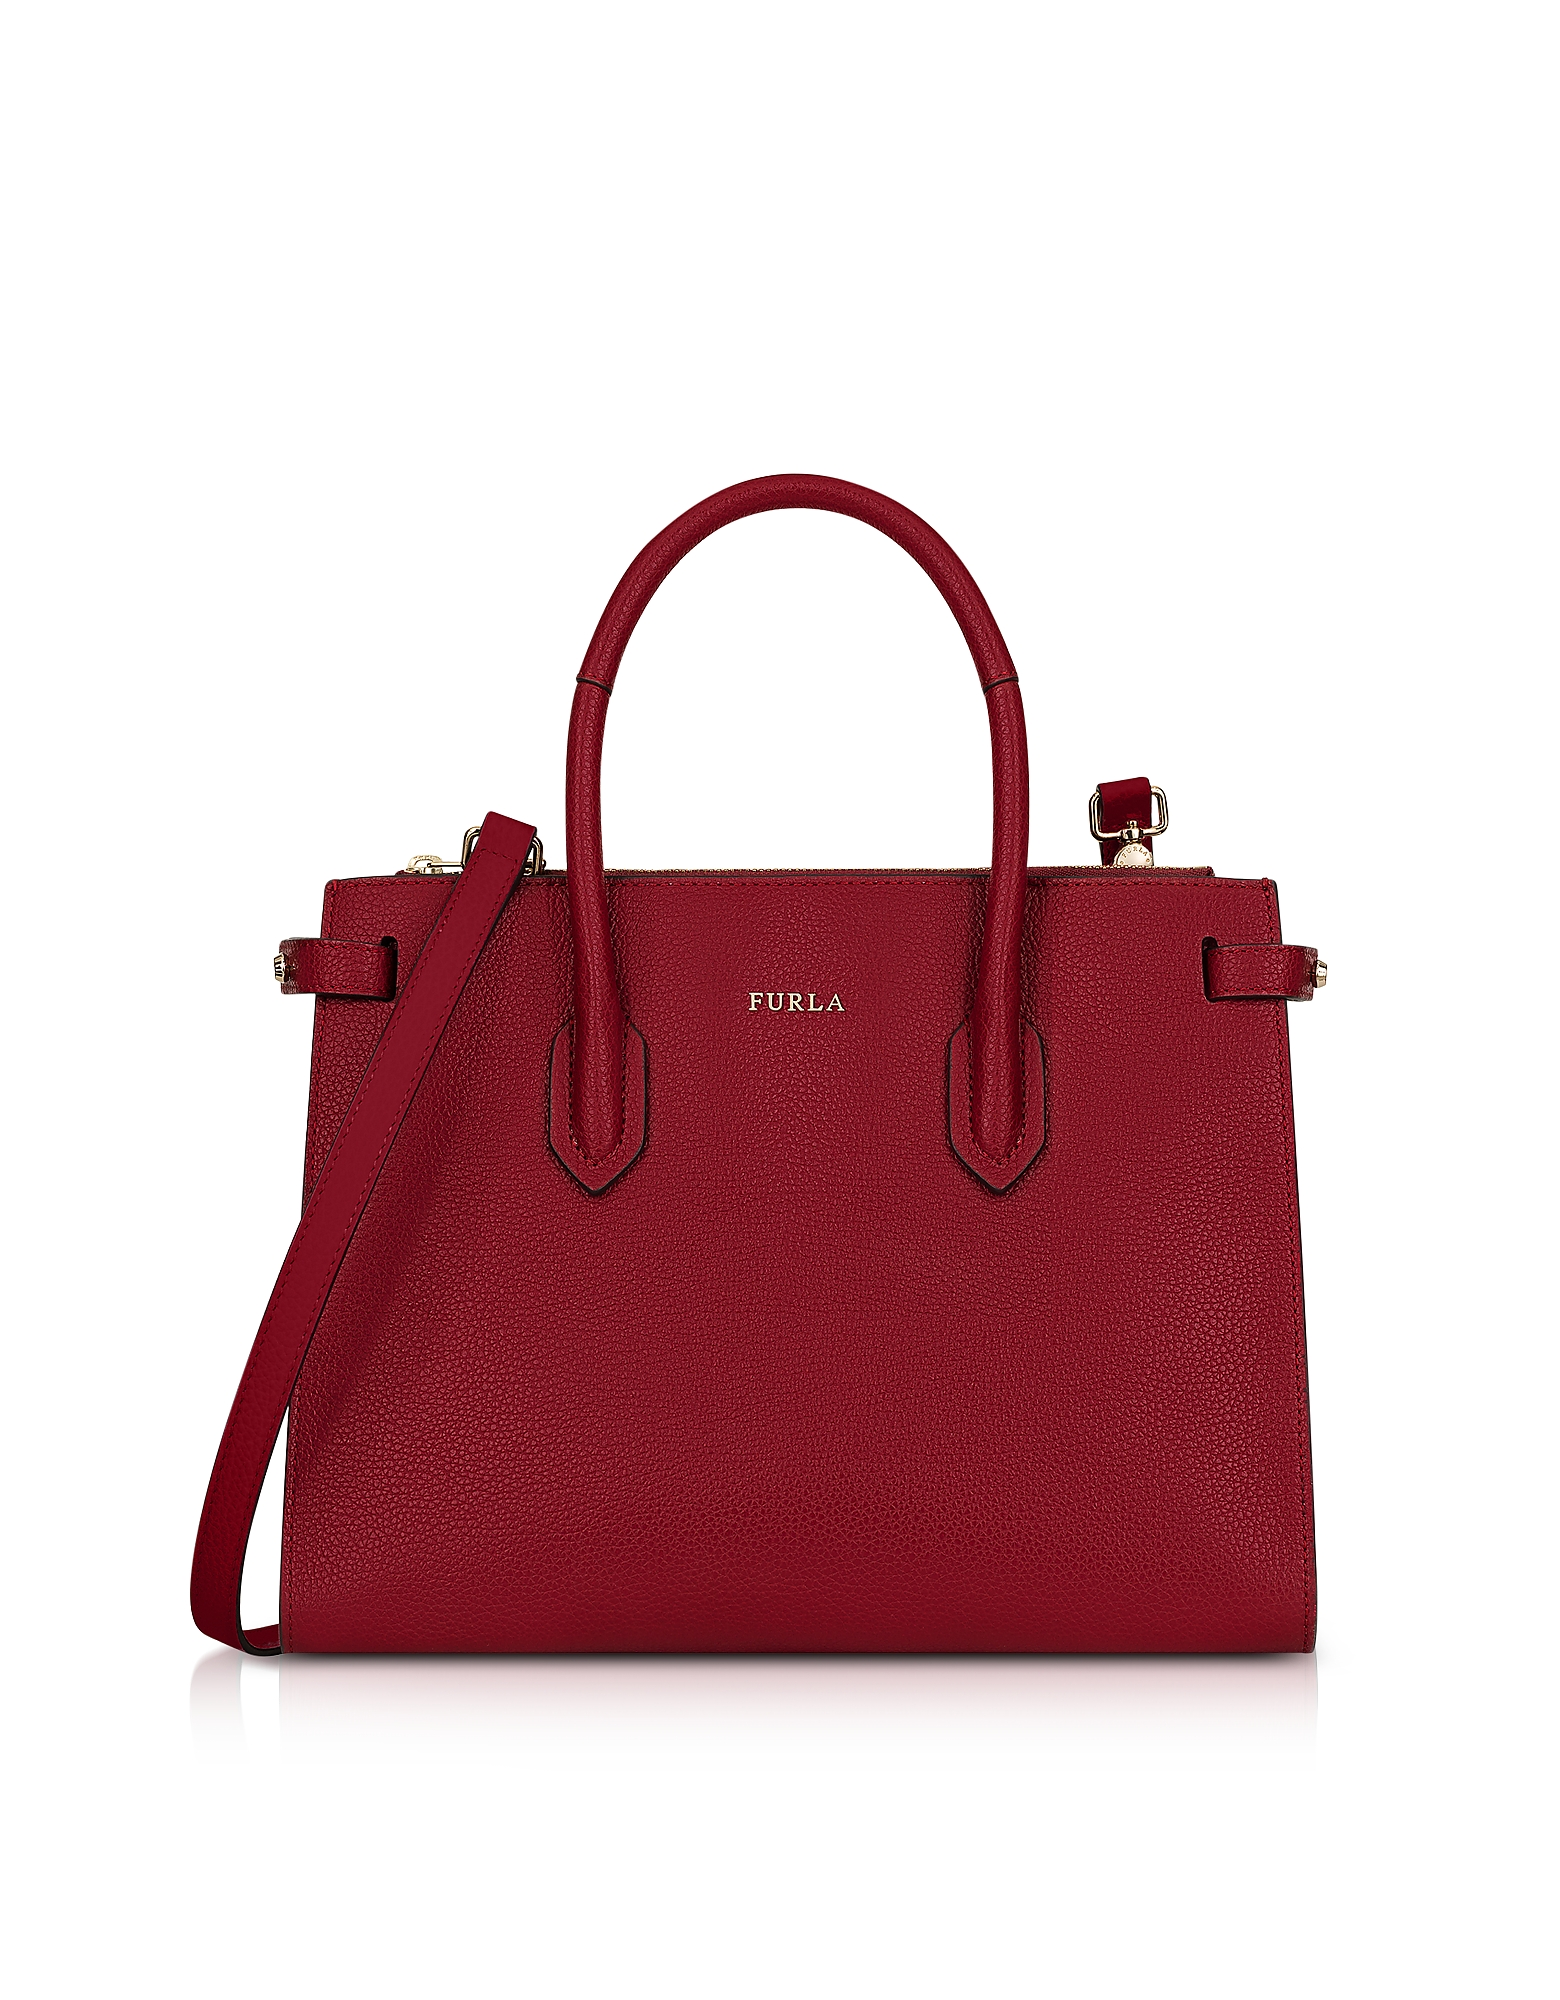 Furla Handbags, Cherry Leather Pin Small E/W Tote Bag